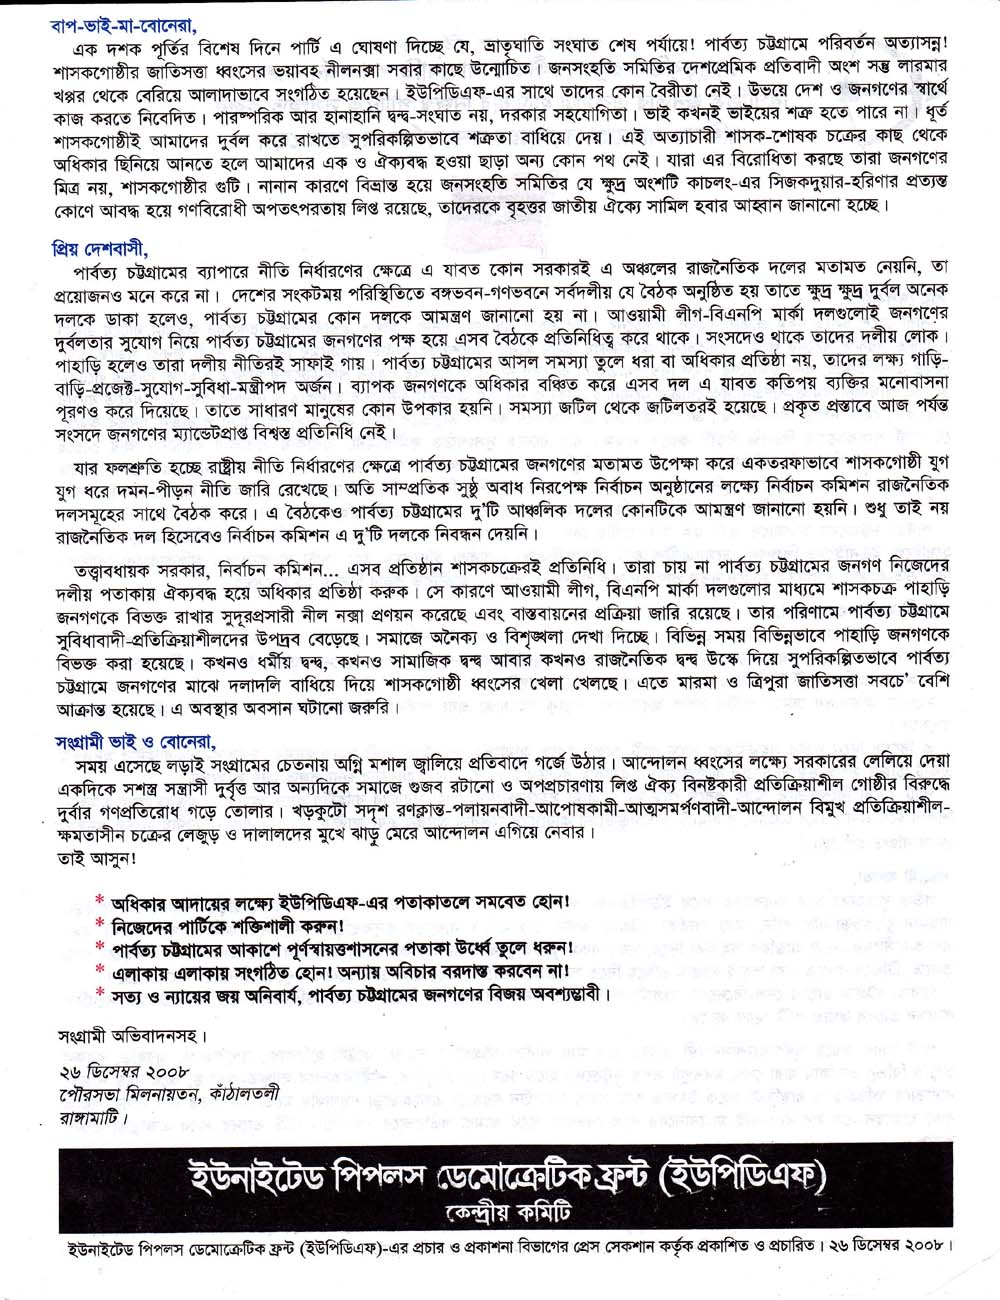 10. Leaflet on 10th founding anniversary, page 2